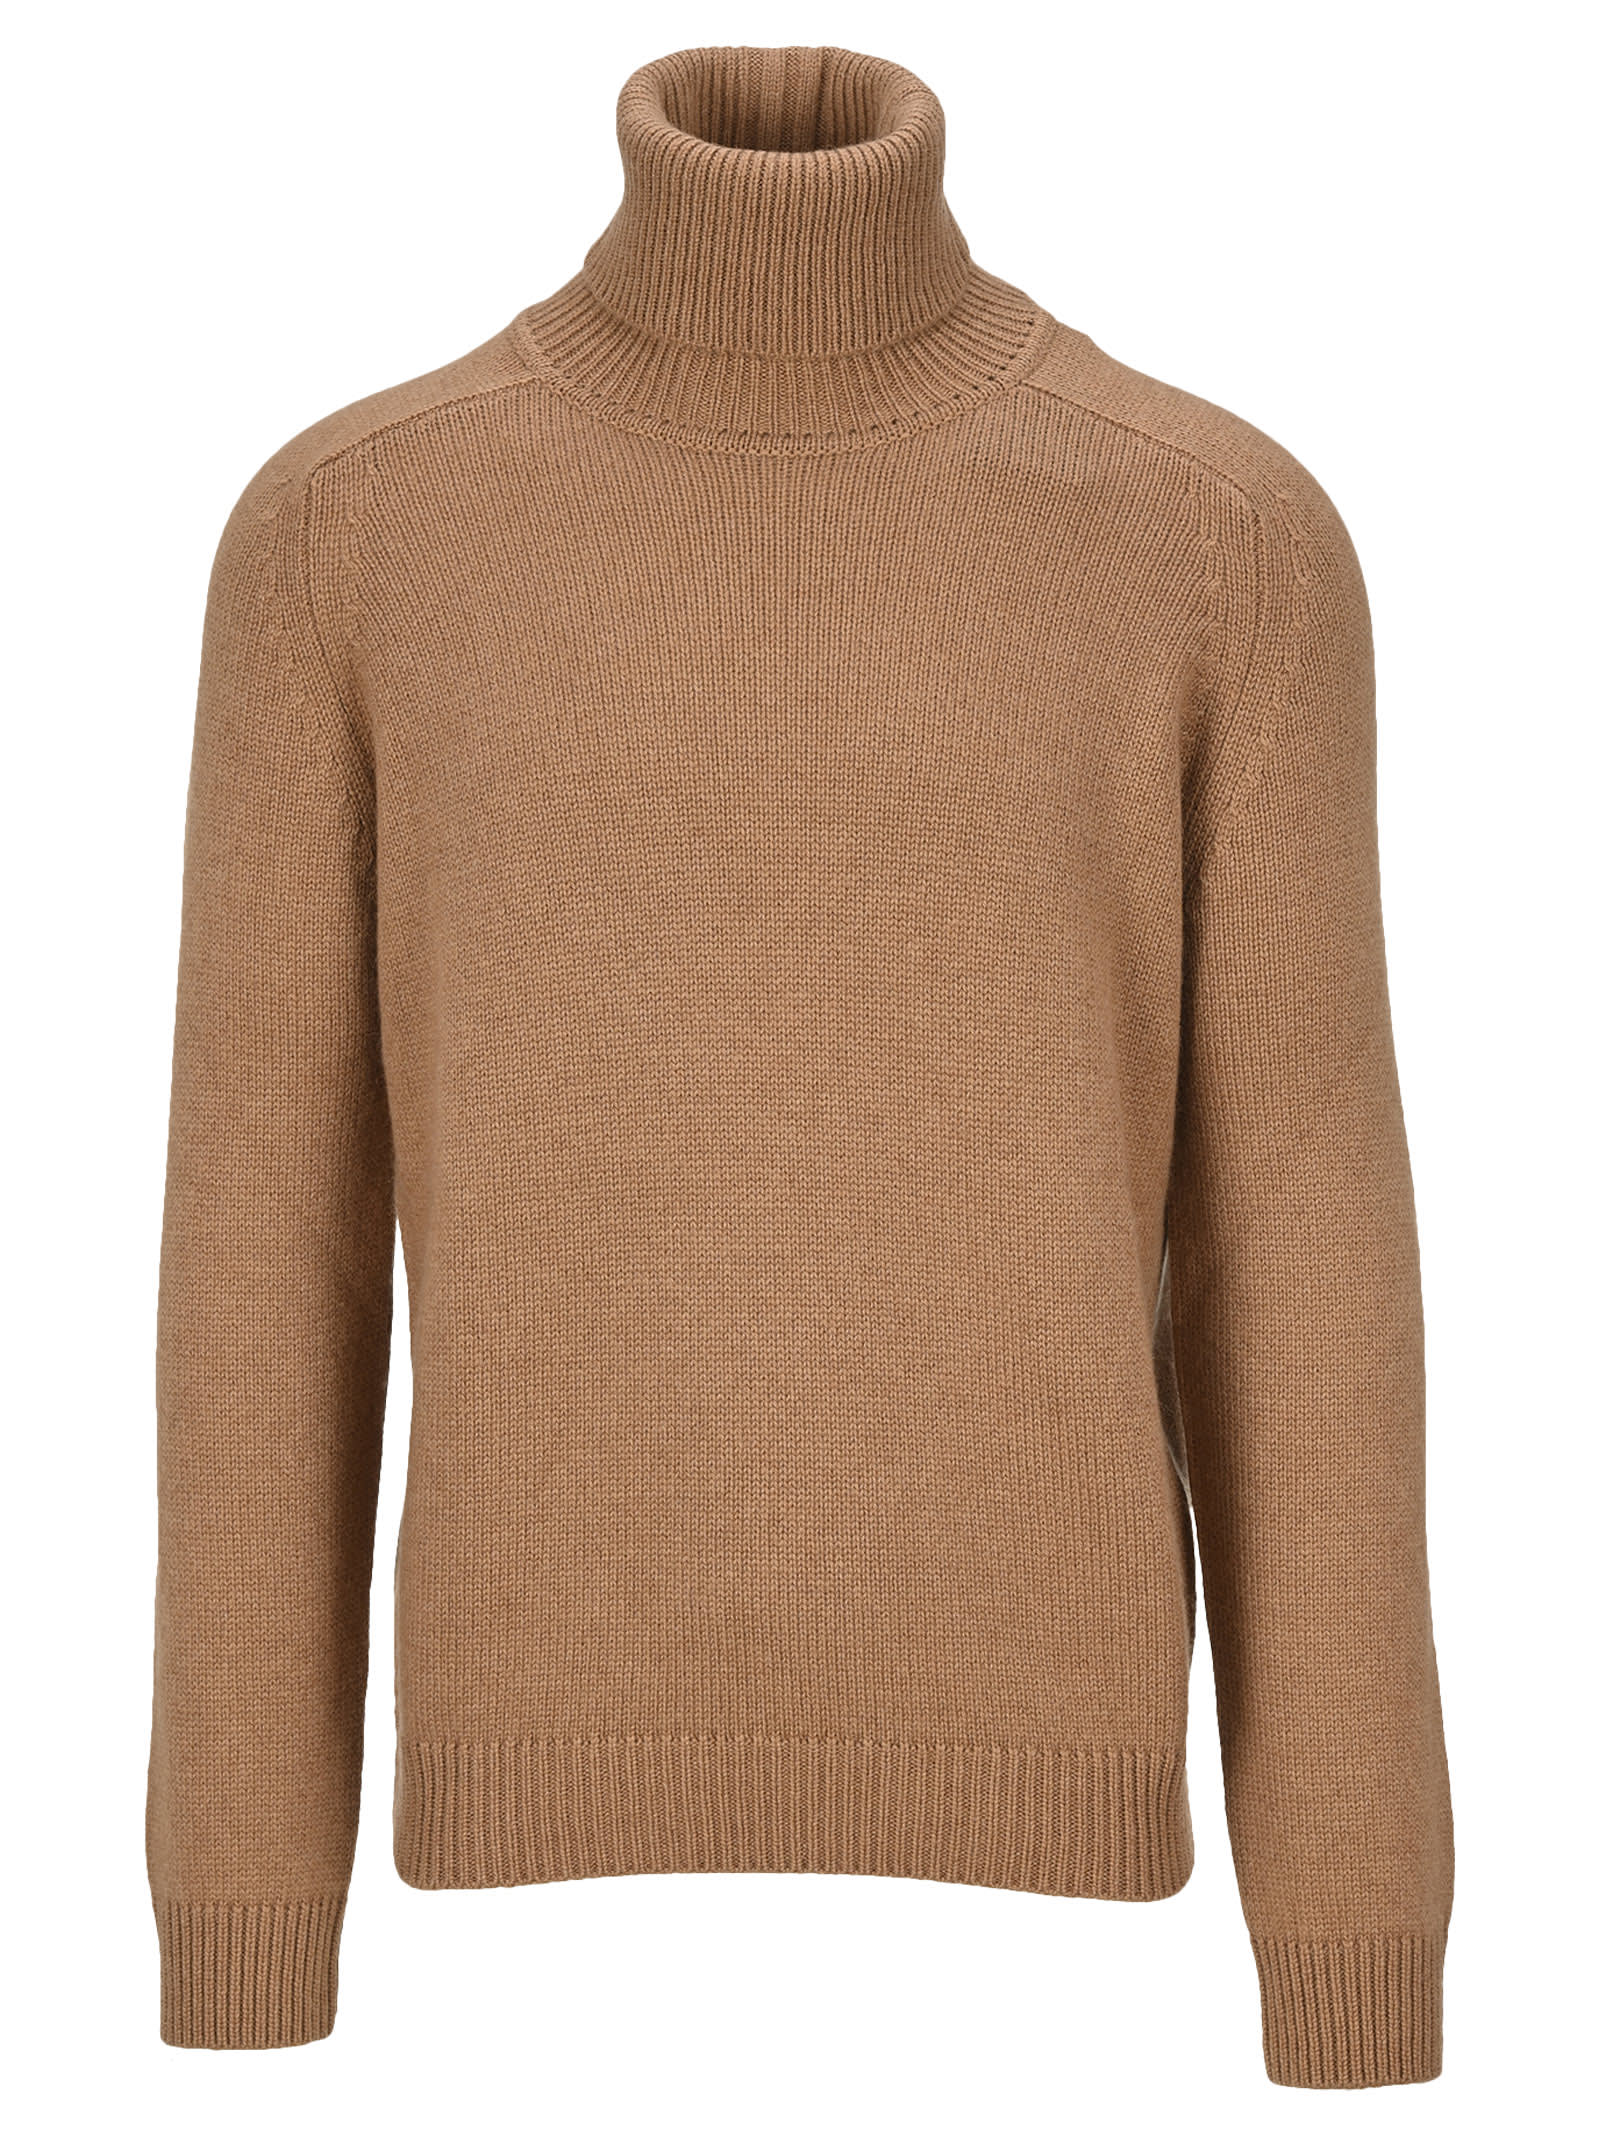 Saint Laurent High Neck Jumper